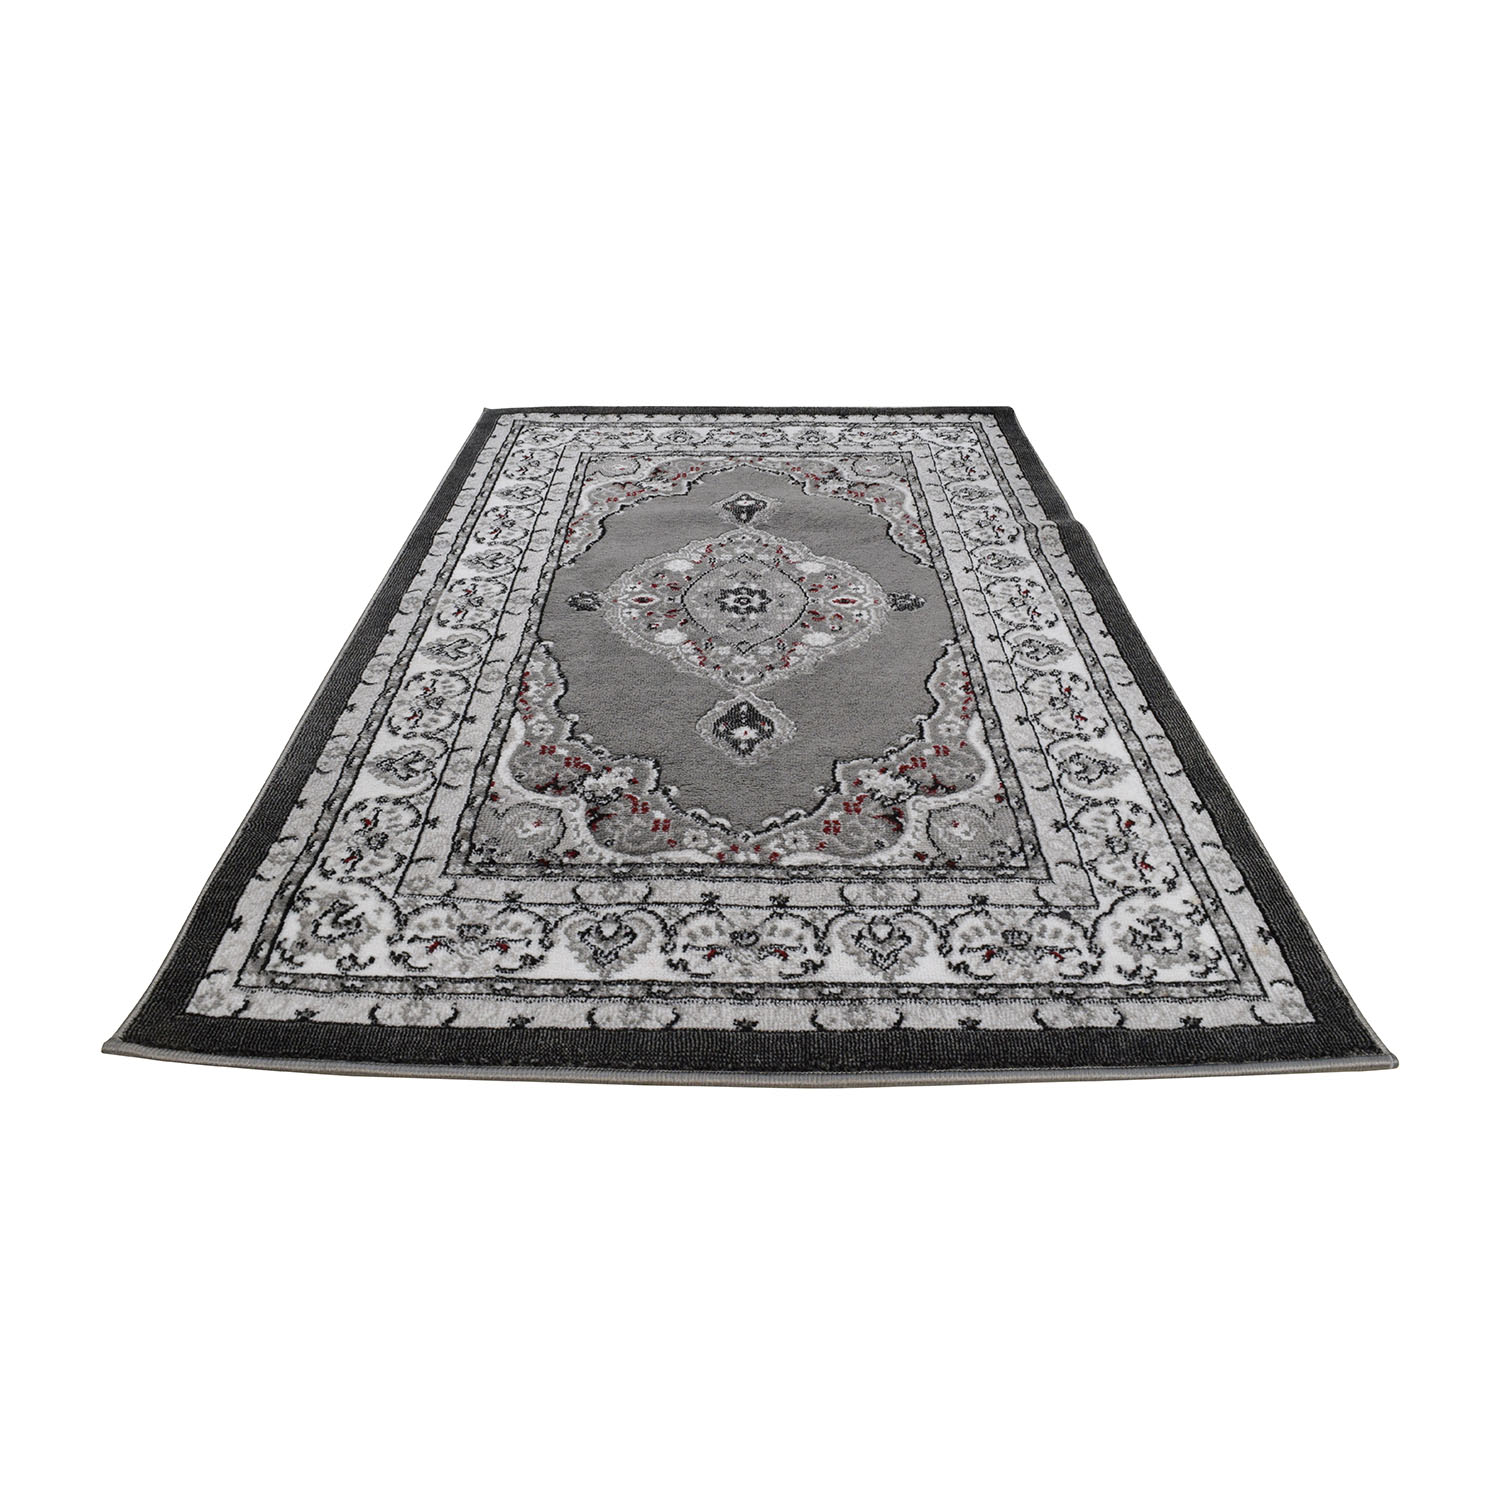 Dulcet Collection Dulcet Collection Grey and Black Print Rug black/ grey